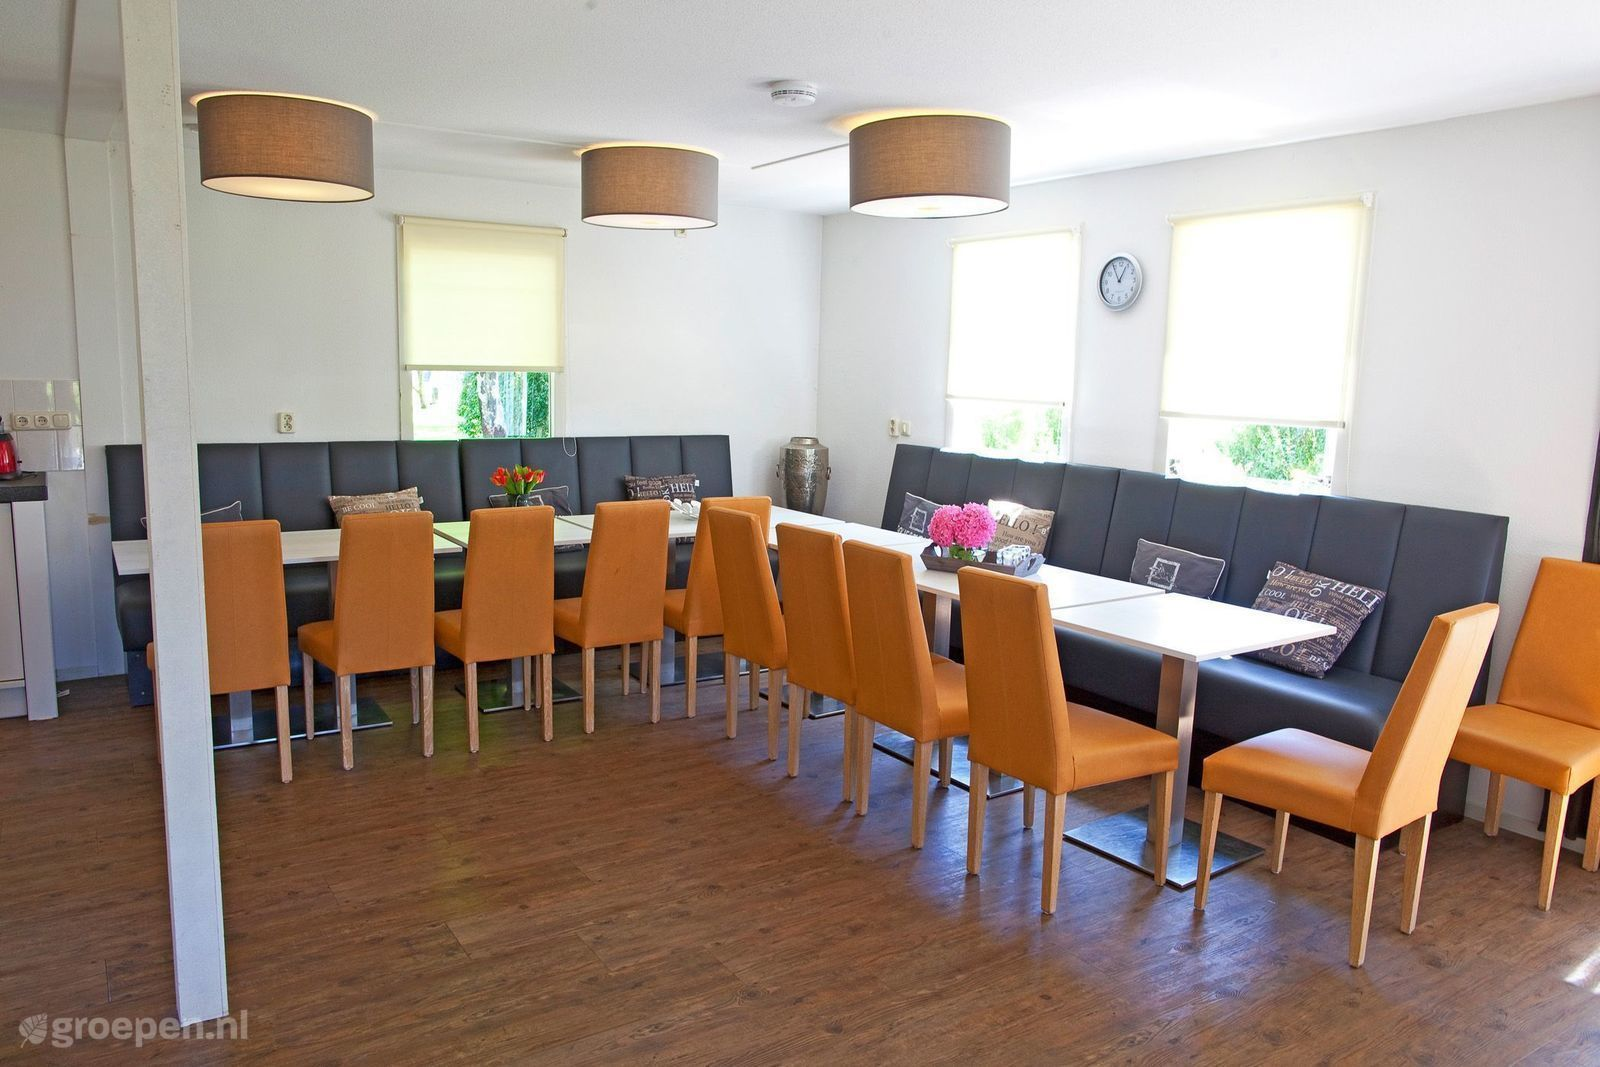 Group accommodation Zwolle